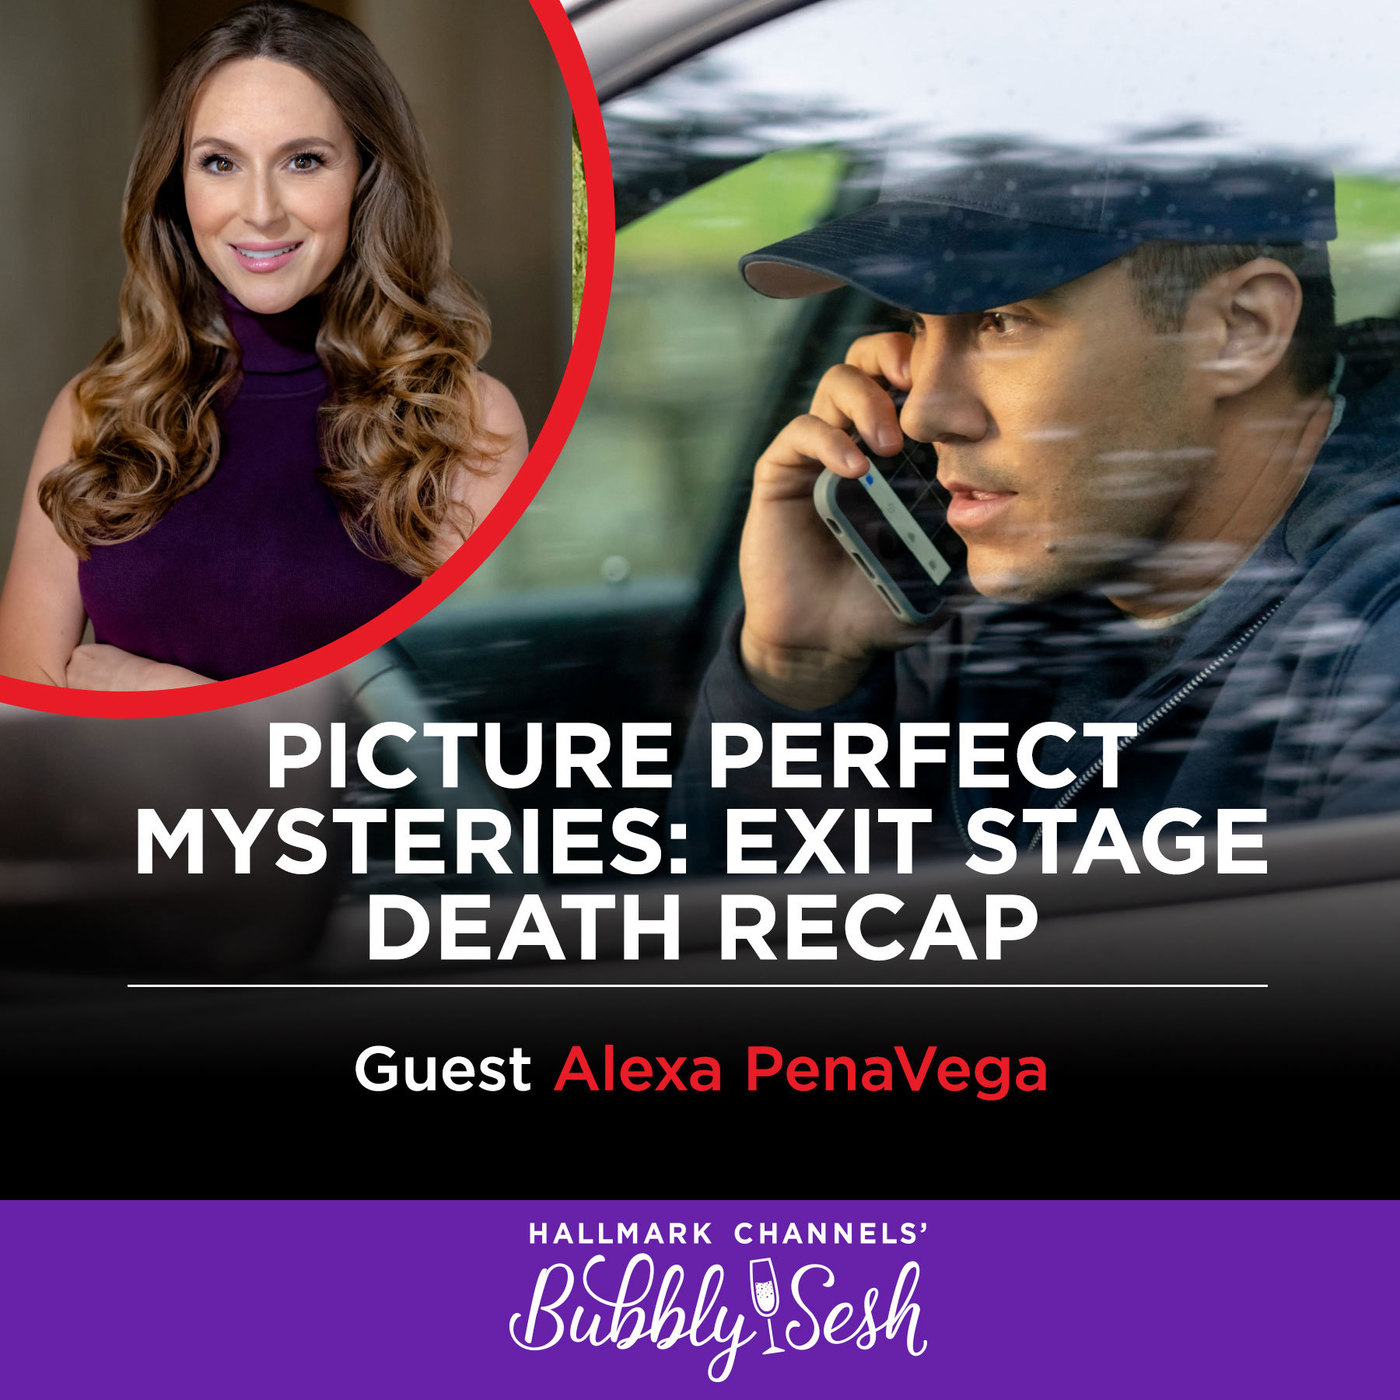 Picture Perfect Mysteries: Exit Stage Death Recap with Guest Alexa PenaVega